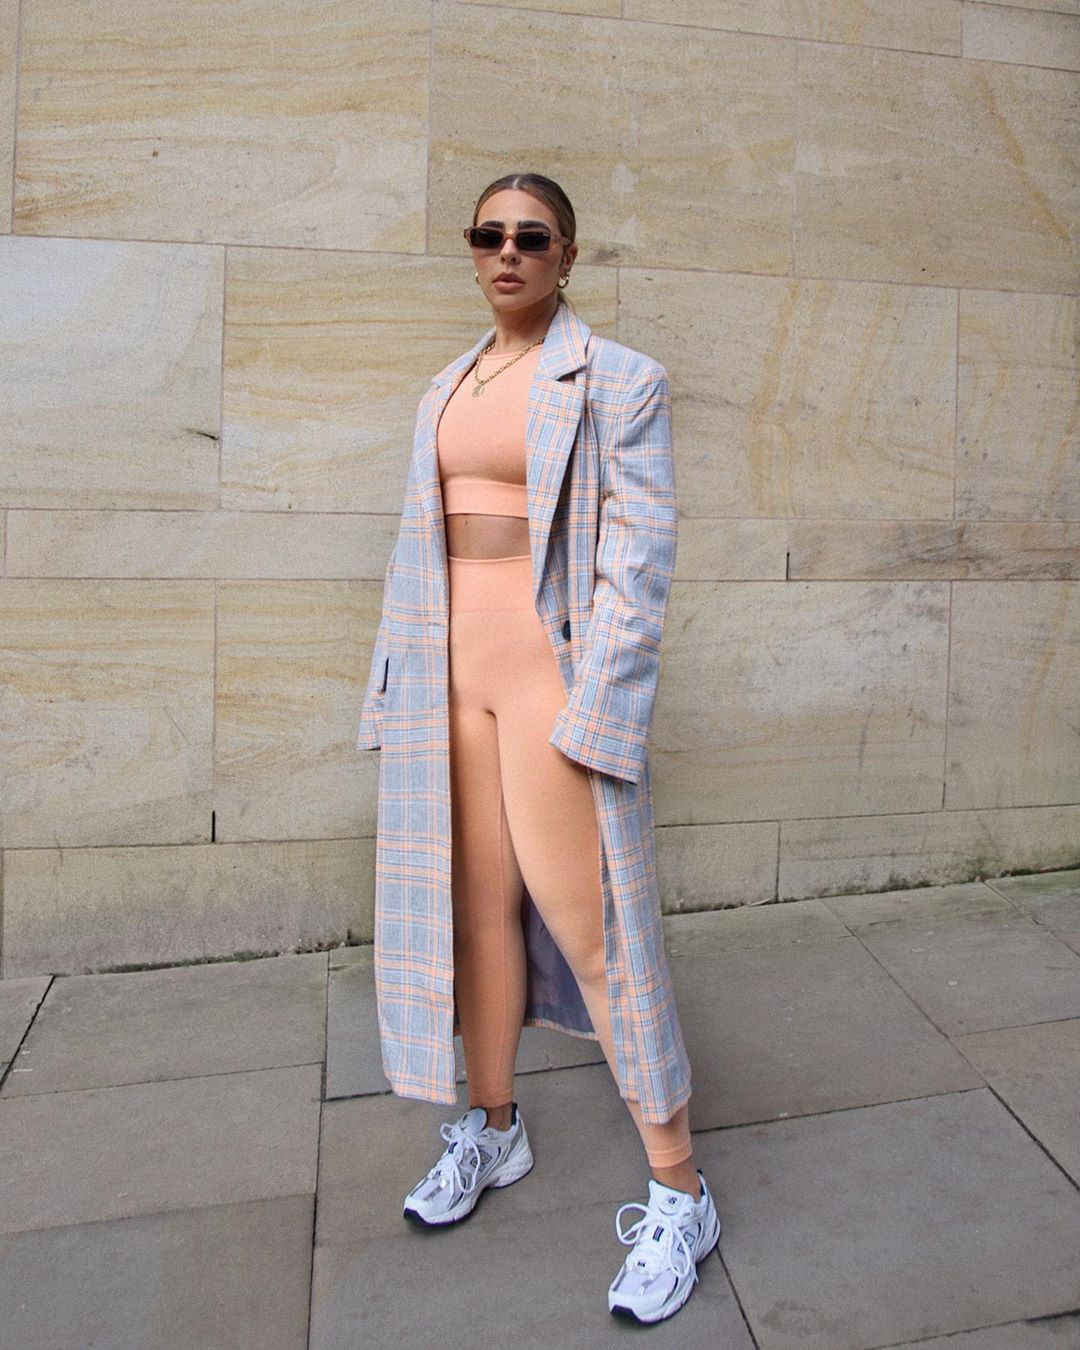 Beige and white trench coat, coat, outfit ideas